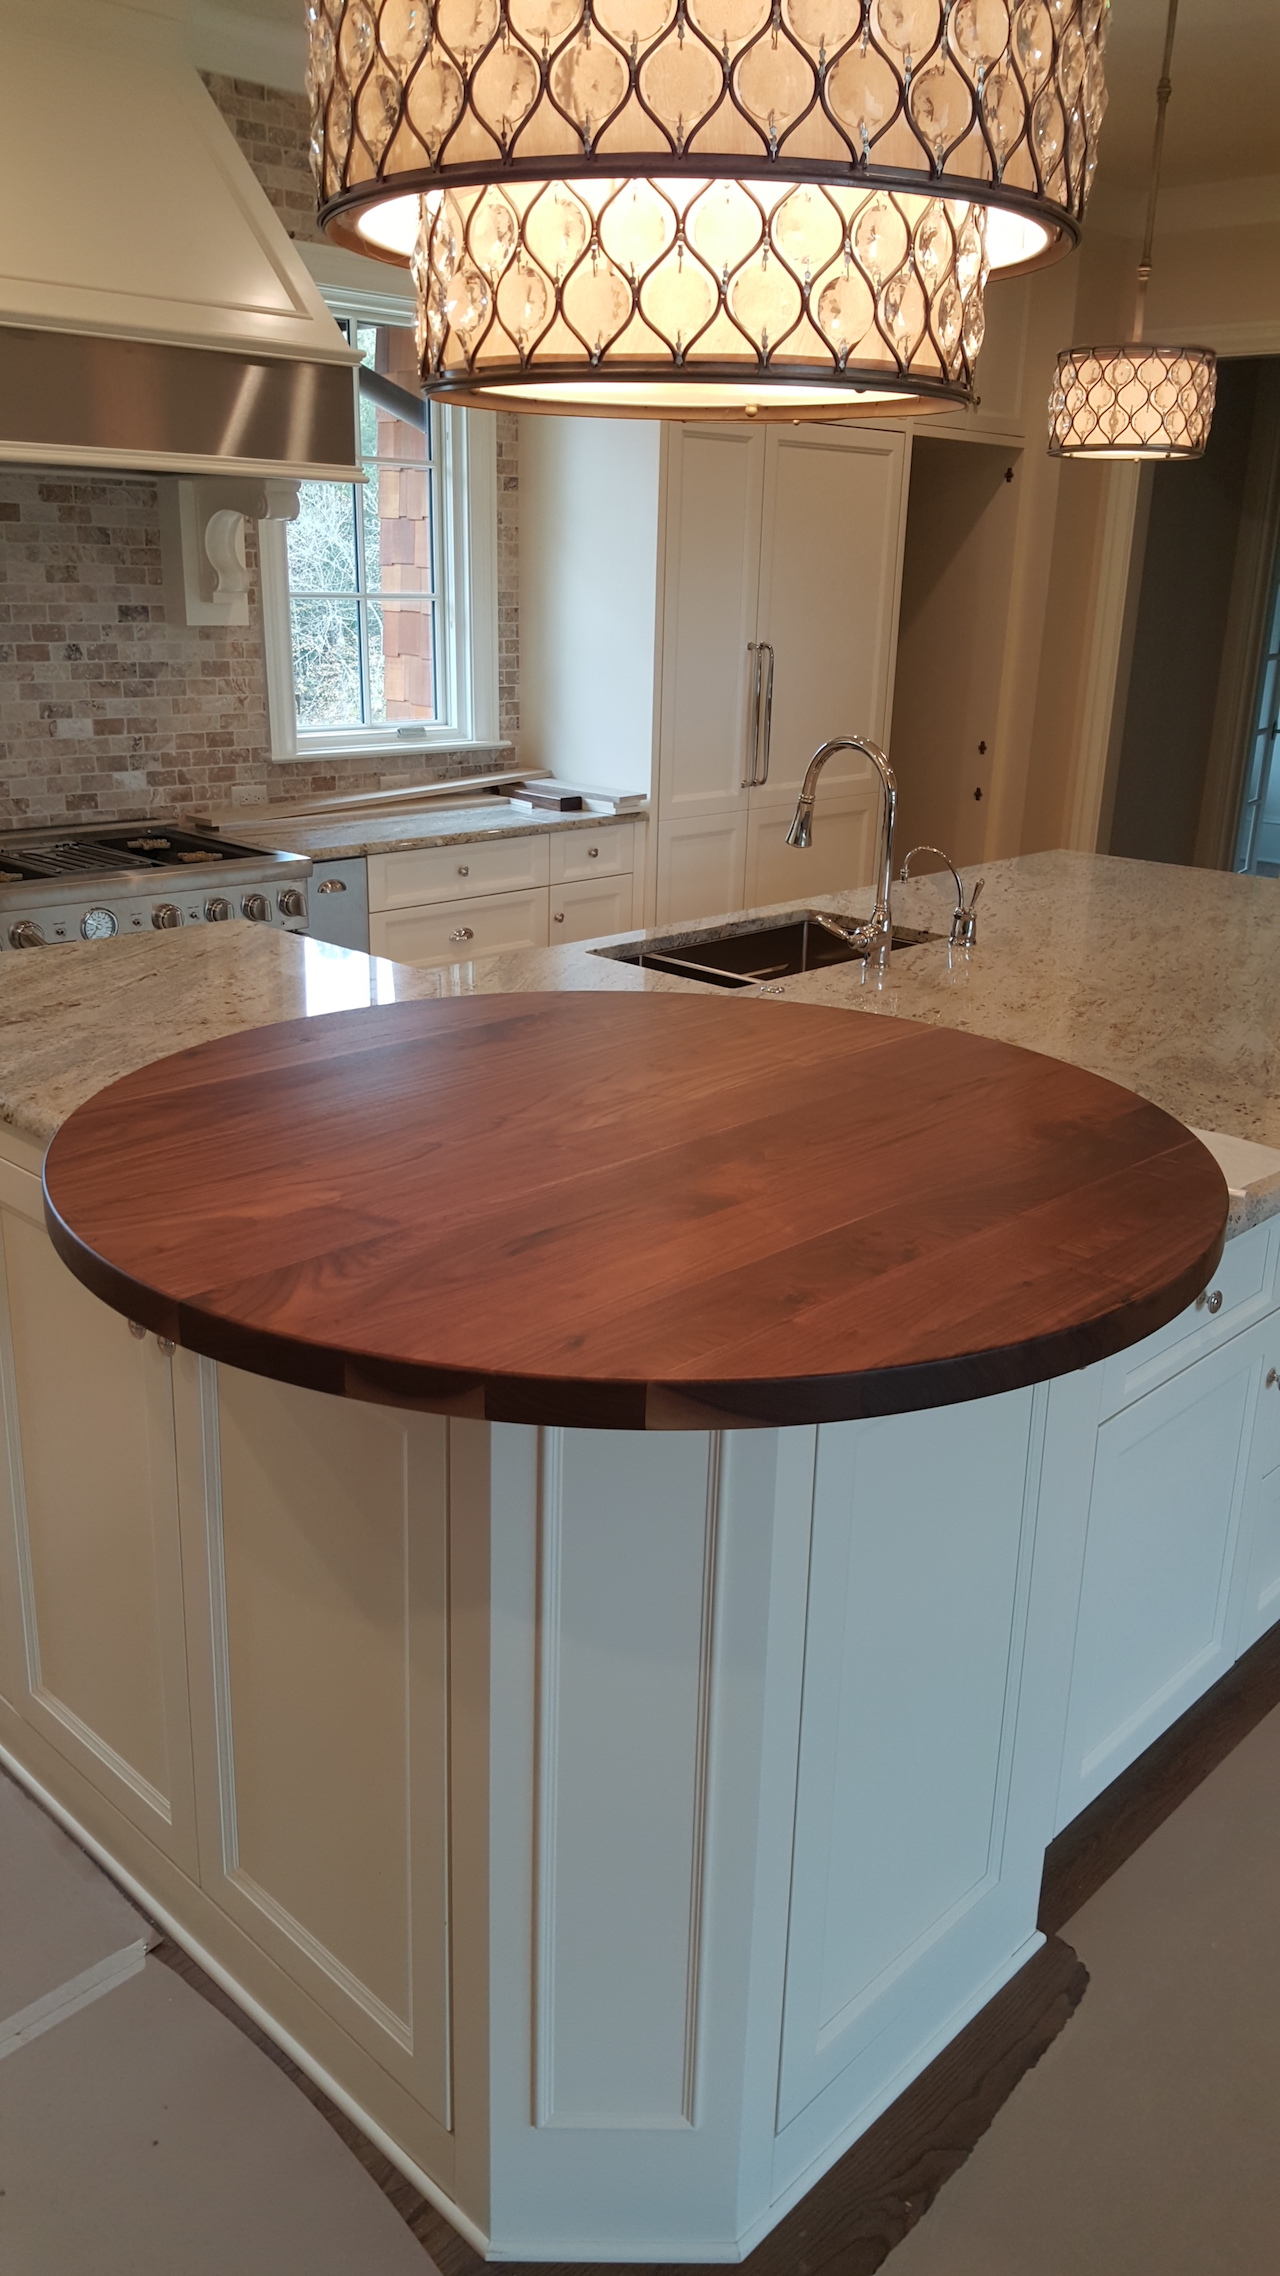 a scraped sale provide tops look custom countertop bbc to rustic block butcher for counter order made aged countertops hand